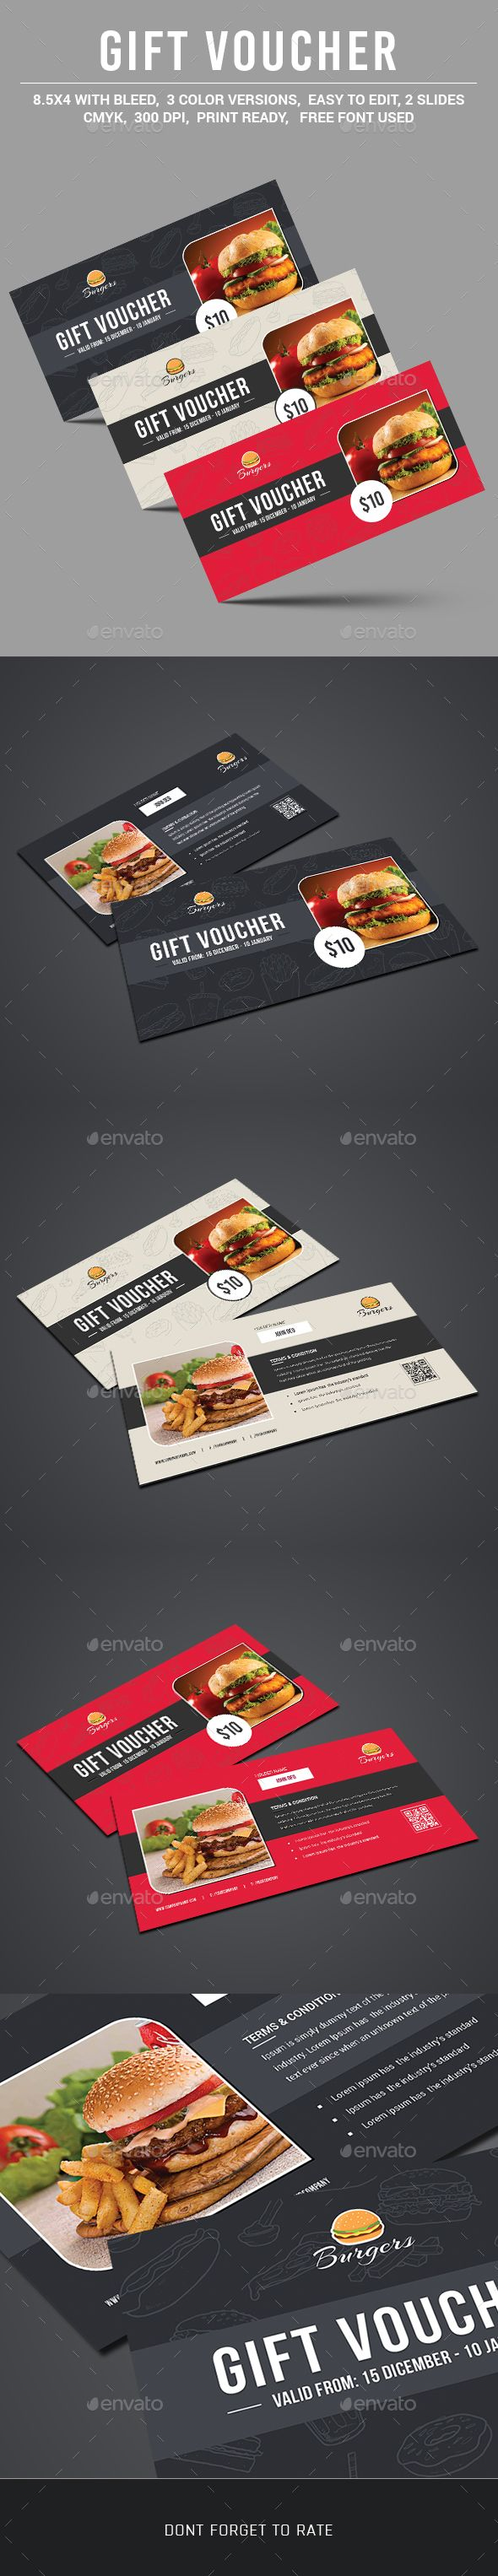 Gift Voucher - Loyalty Cards Cards & Invites Download here: https://graphicriver.net/item/gift-voucher/13101904?ref=alena994